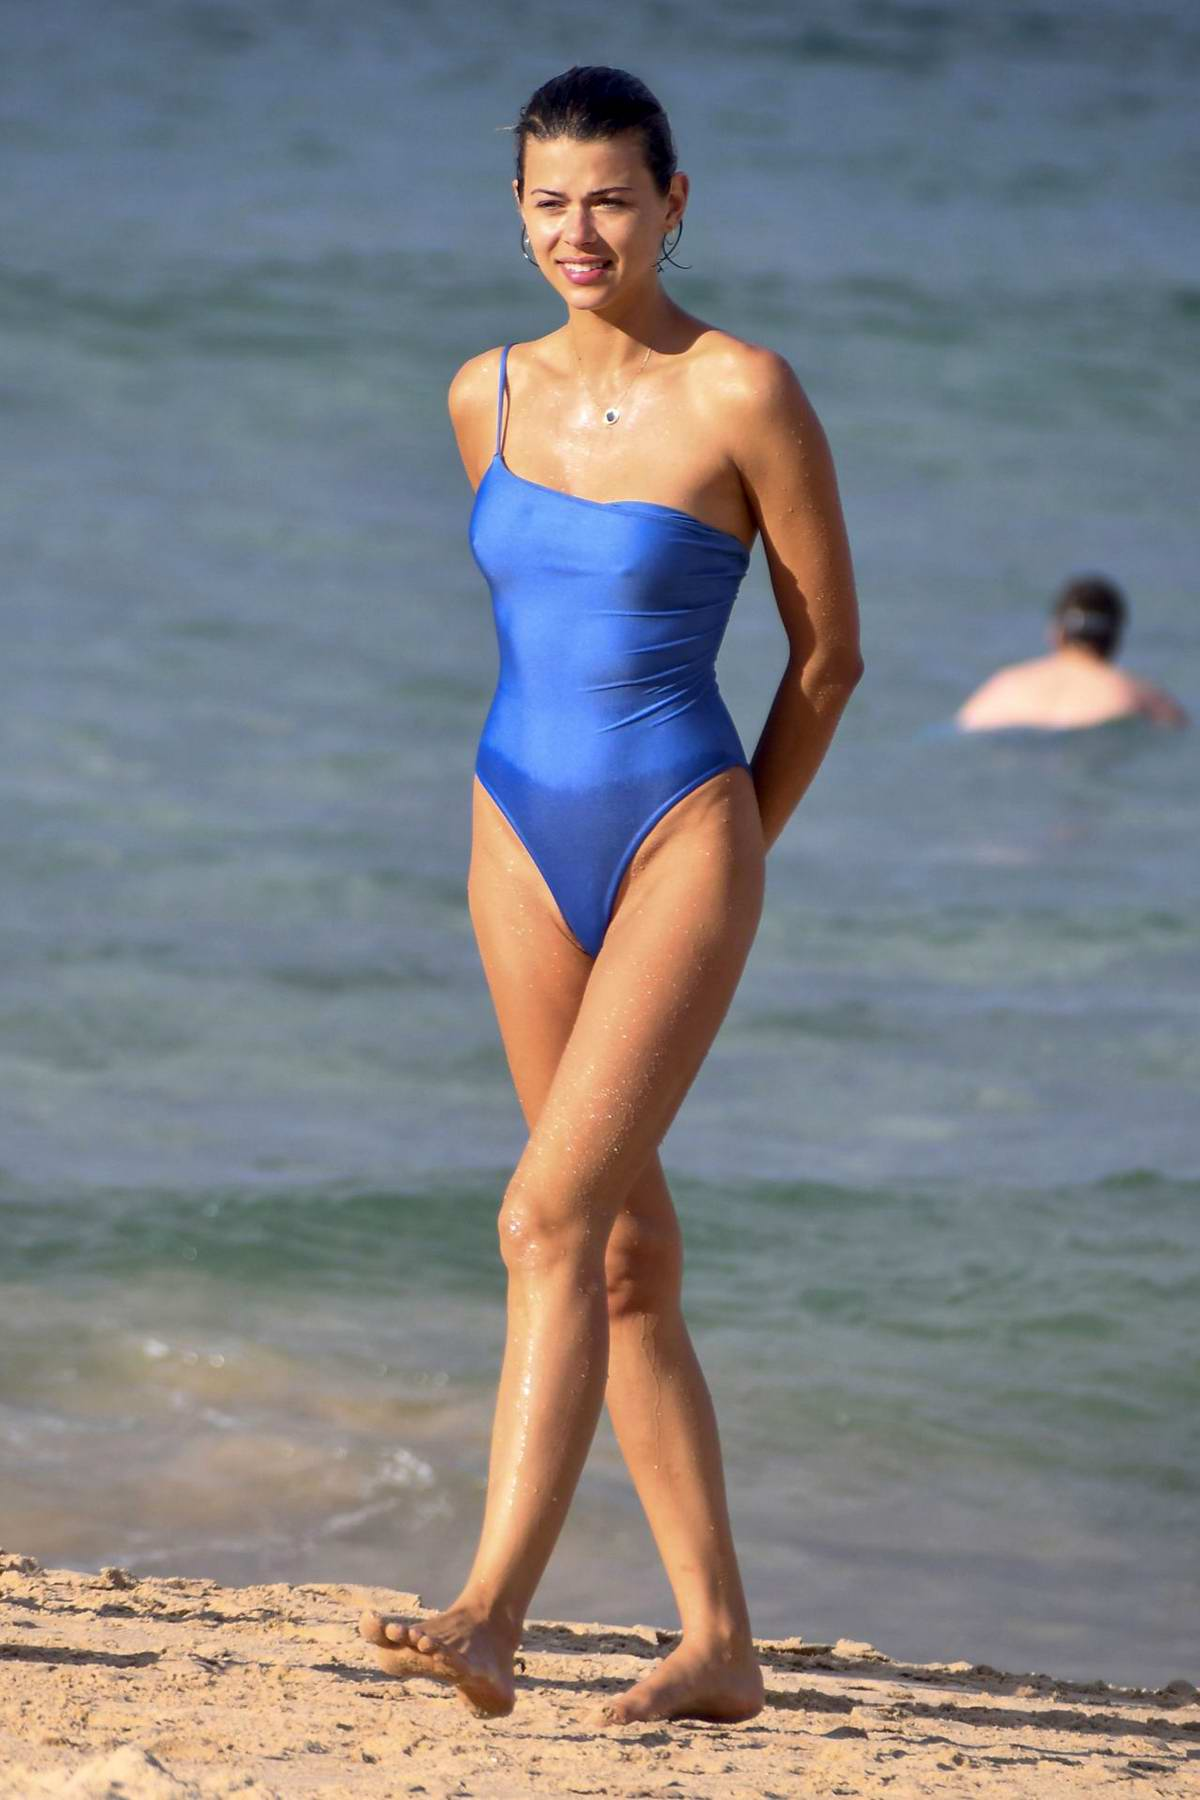 Georgia Fowler looks great in a blue swimsuit while relaxing at the beach in Sydney, Australia